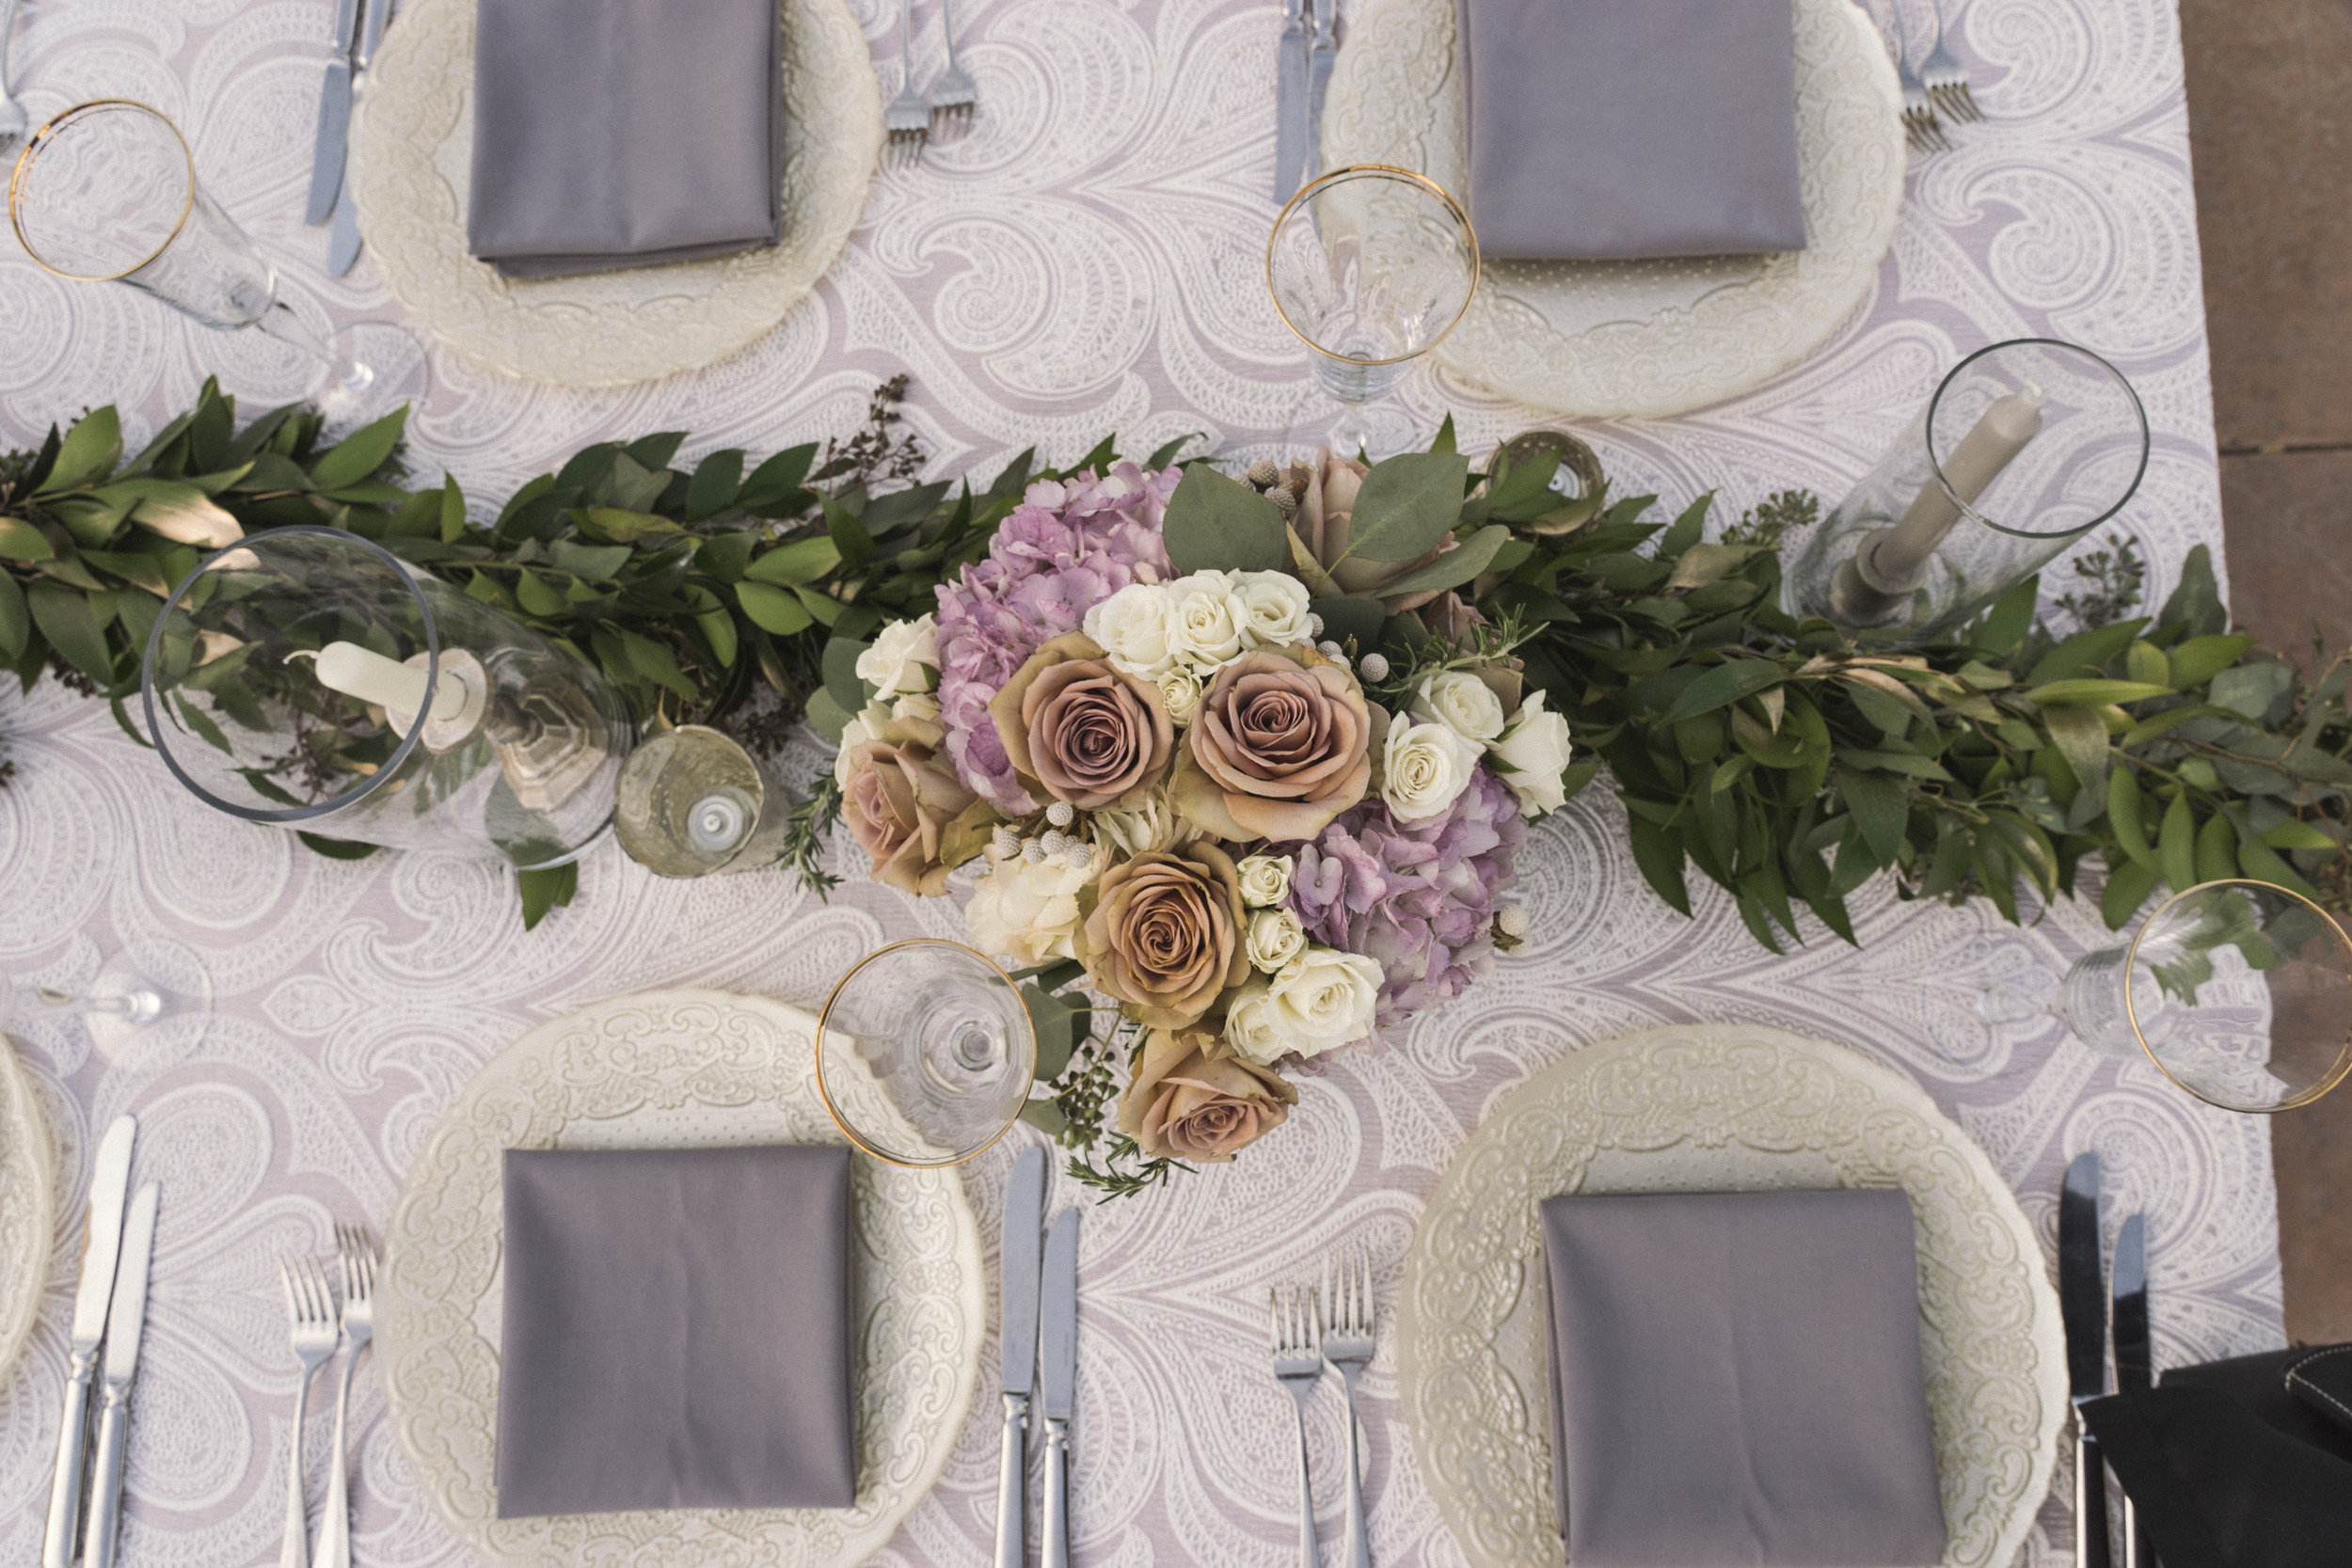 7 white rose purple hydrangea centerpiece greens garland purple place setting dinner table lace linen Life Design Events photos by Keith and Melissa Photography.jpg